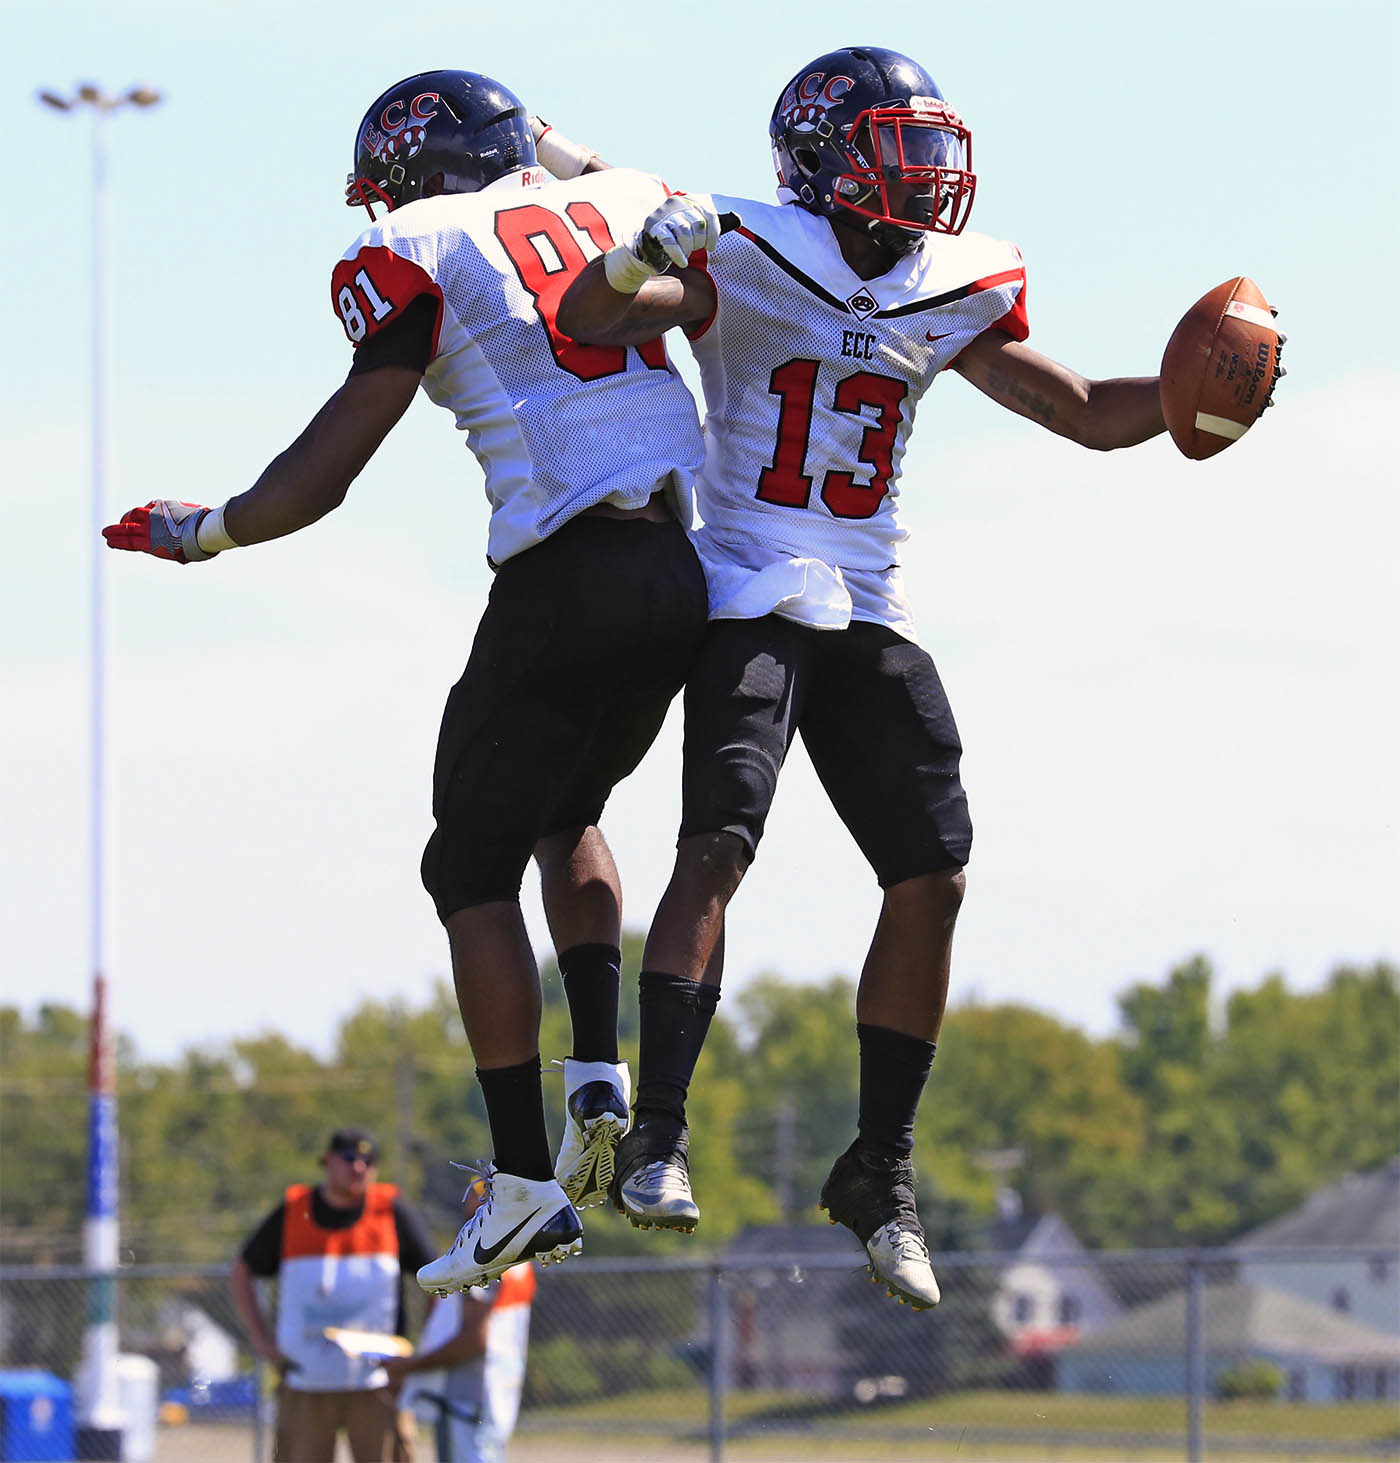 Erie Community College's jametrius Lewis celebrates his touchdown with Montier jackson during foruth quarter action against Nassau County Community College Lions at the ECC South campus on Saturday, Aug. 27, 2016. (Harry Scull Jr./Buffalo News)